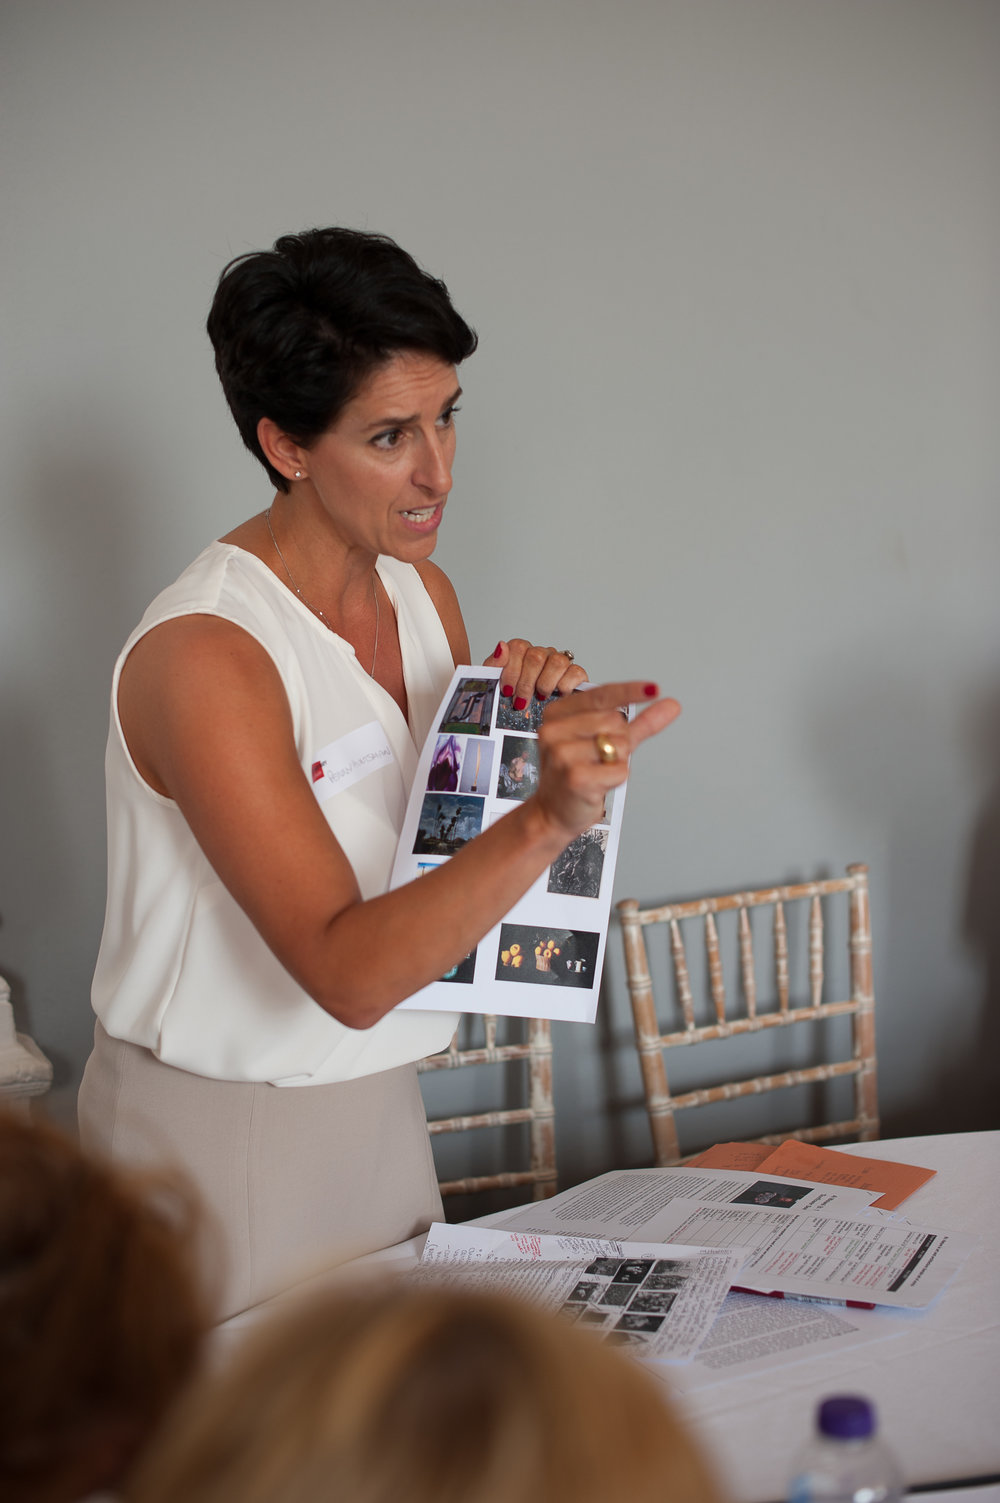 Penny Huntsman, author of Thinking about Art, during a workshop session